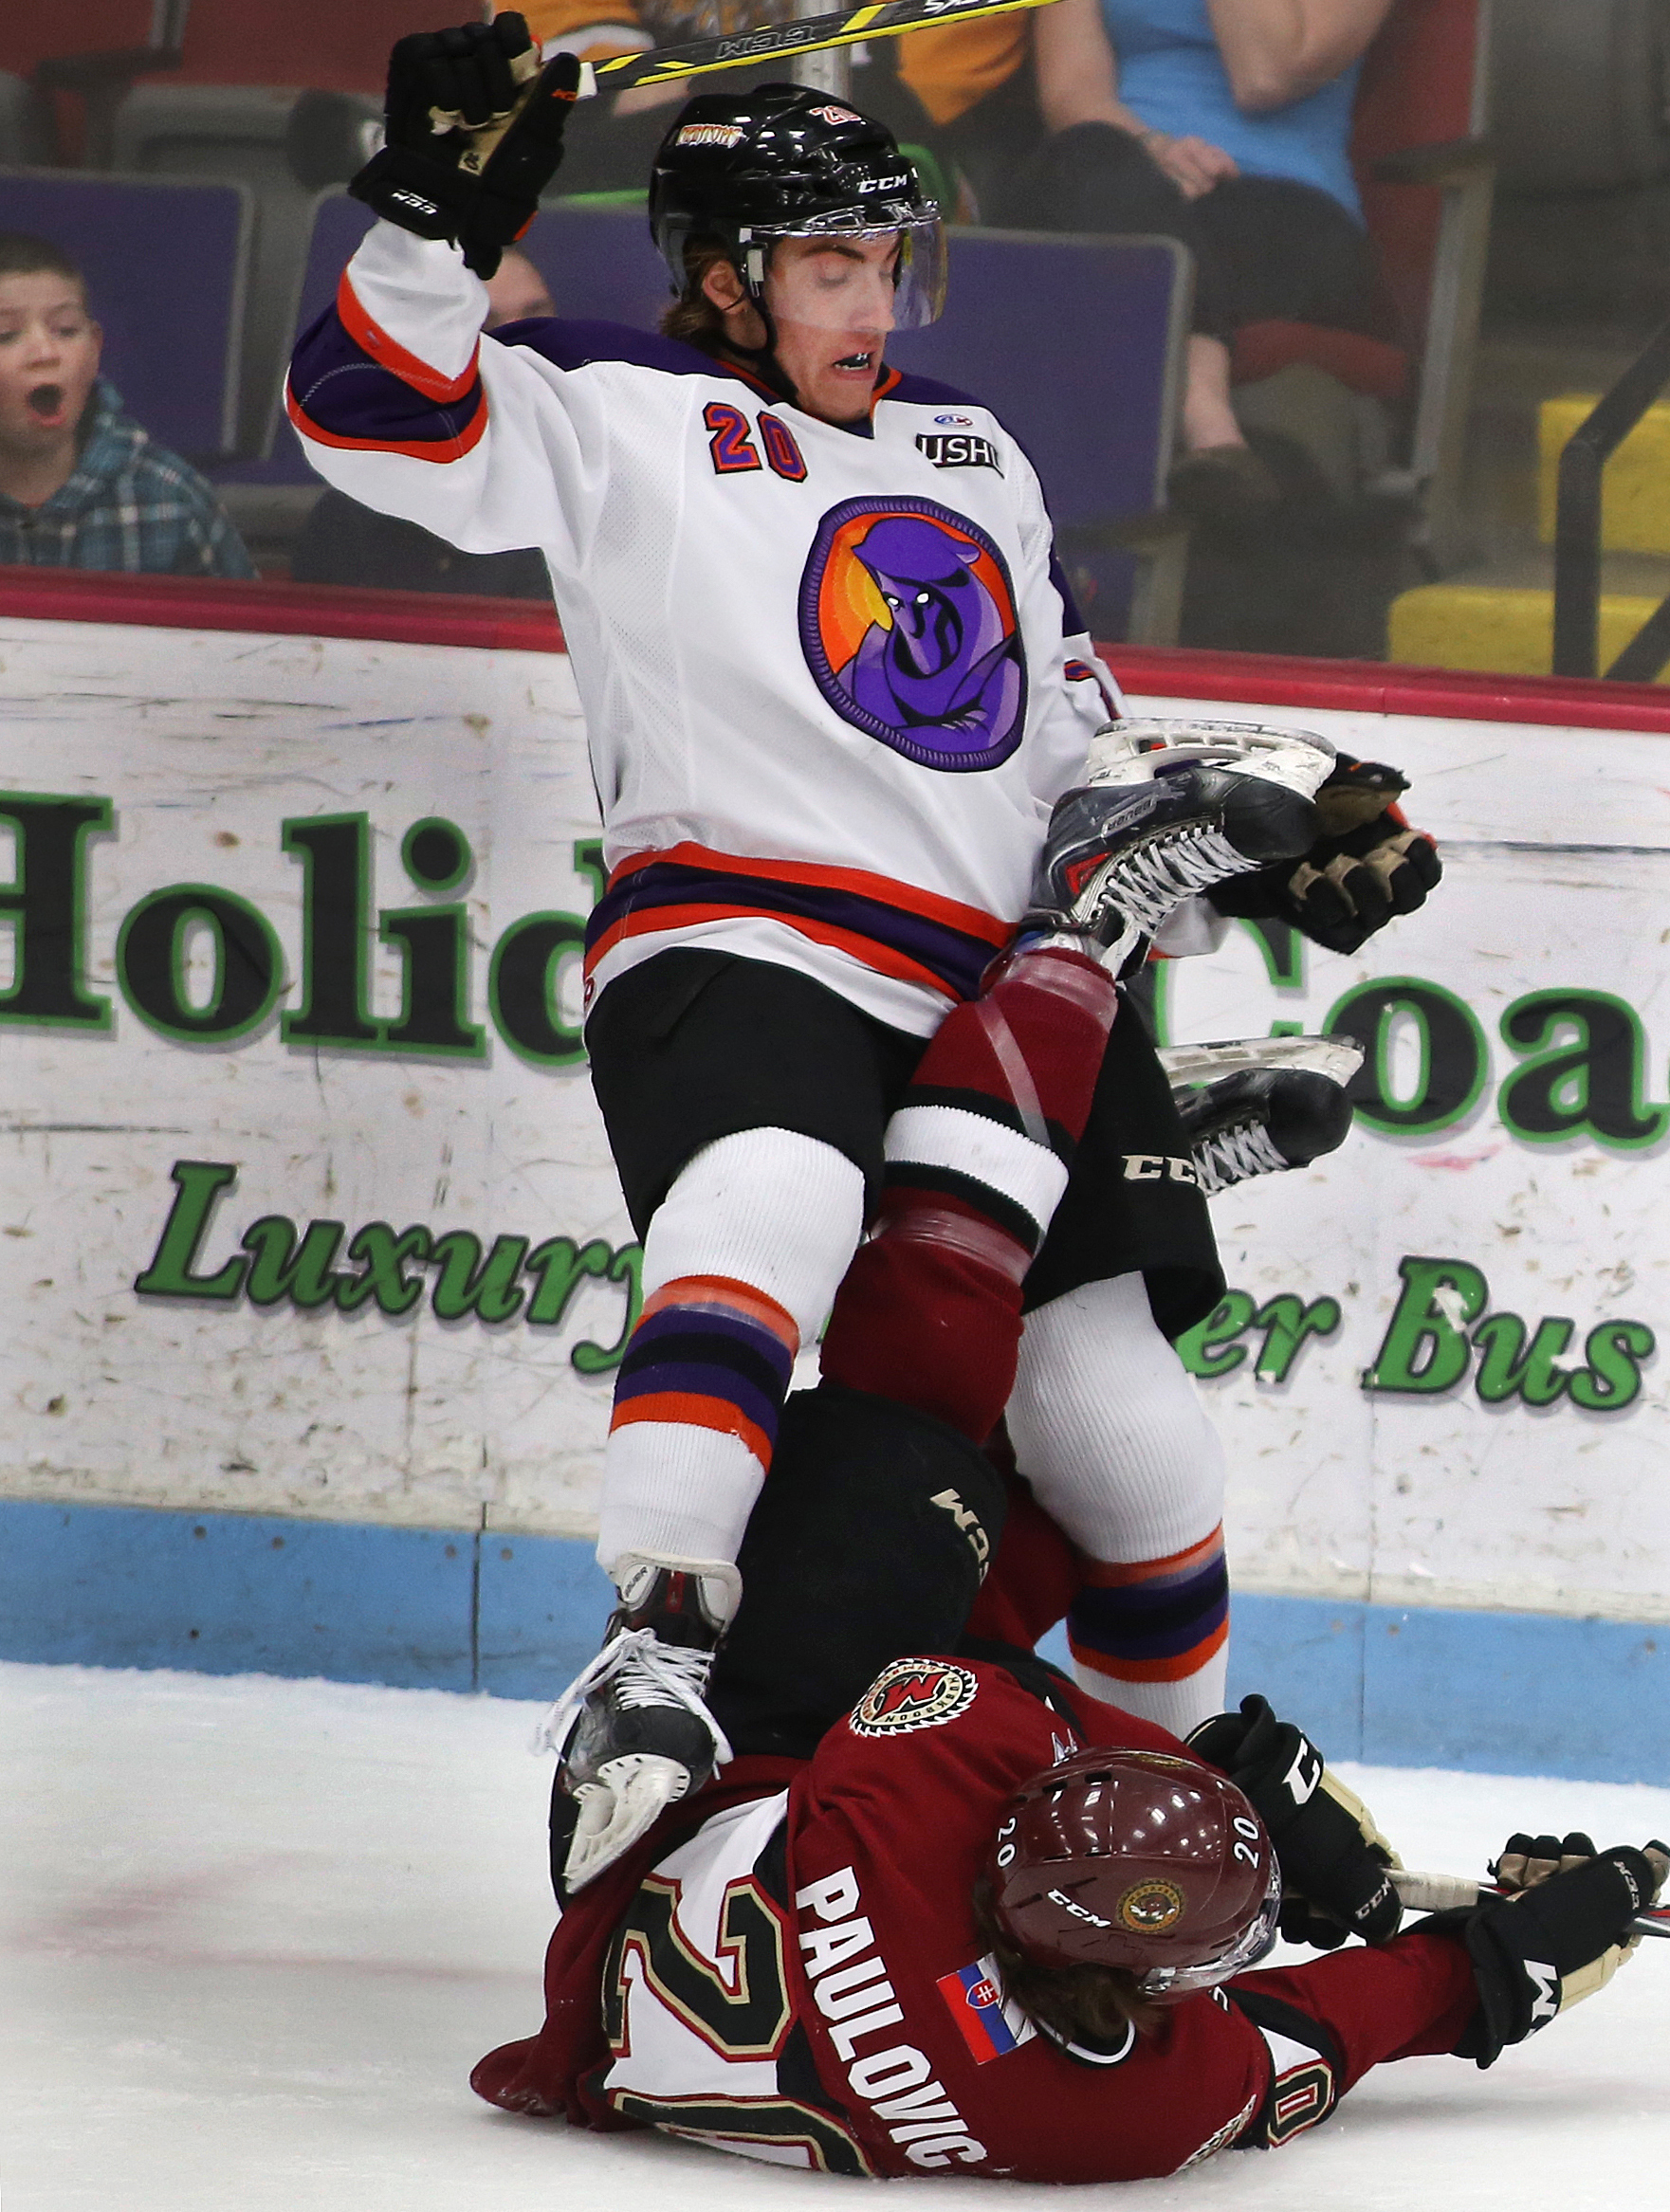 Lukas Craggs (20) of Youngstown collides with Matej Paulovic of Muskegon before called for a penalty in the first period of the USHL playoff opener game at the L.C. Walker Arena Wednesday, April 15, 2015. Muskegon won 5-4 in overtime.